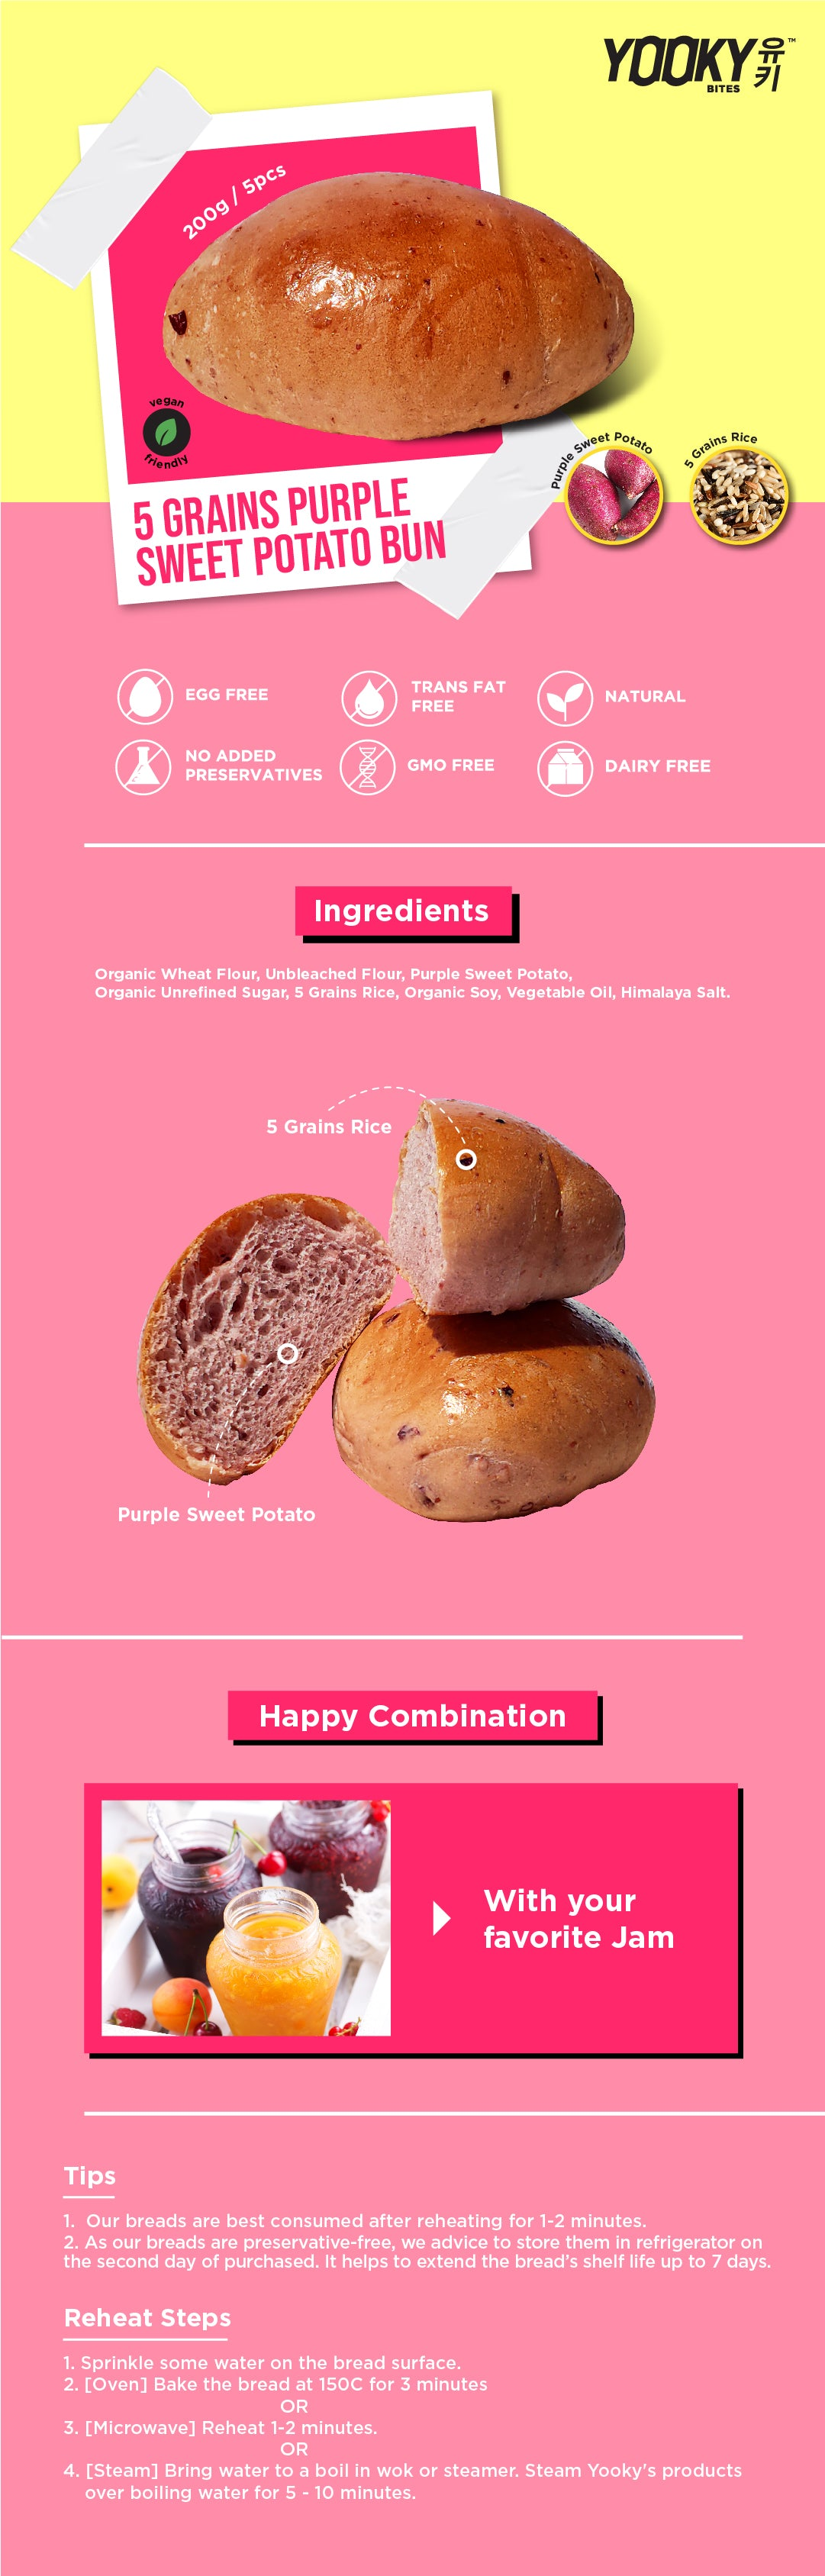 5 Grains Purple Sweet Potato Bun